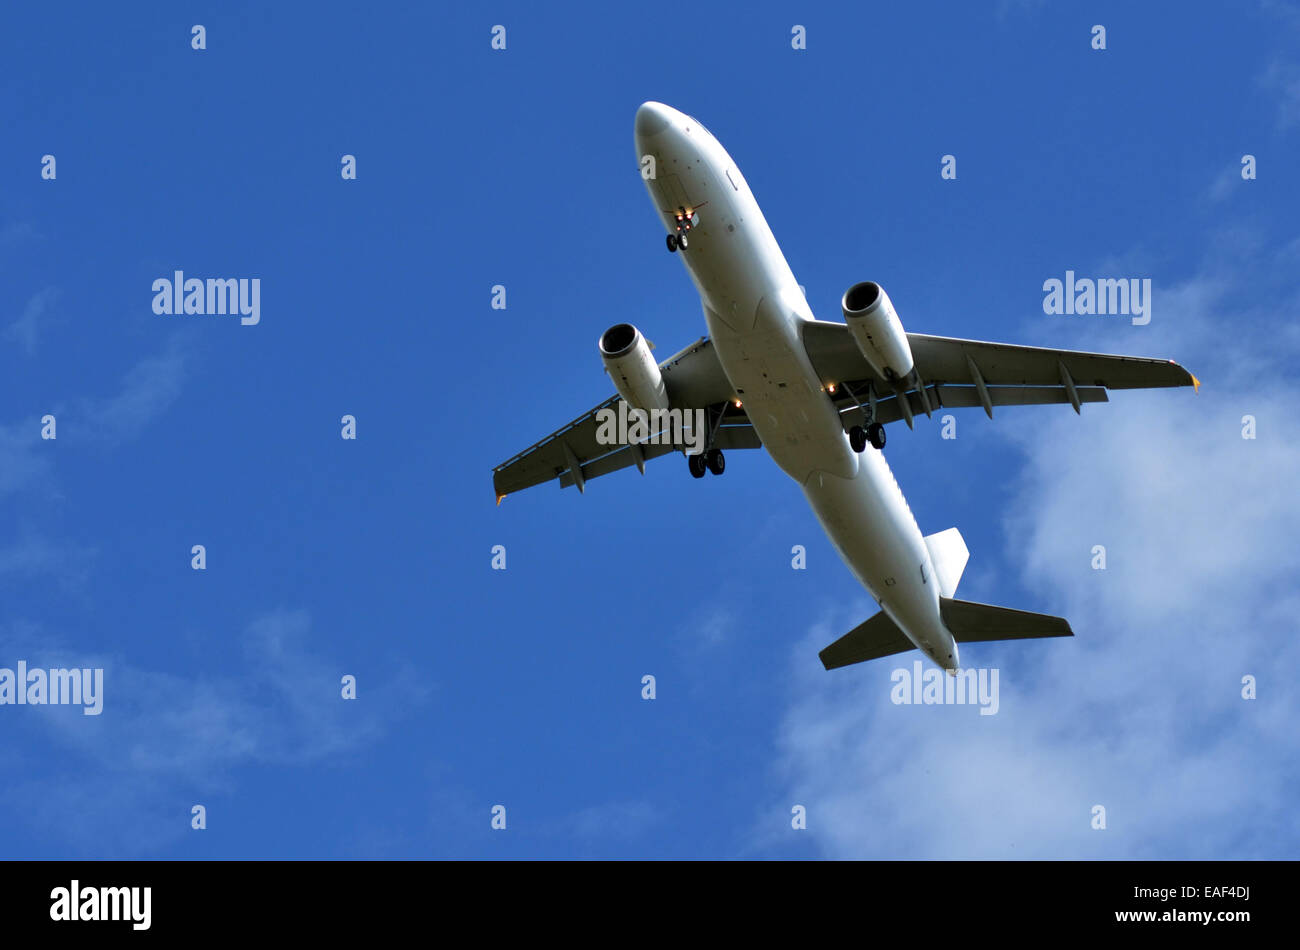 Commercial airplane flying in blue sky. concept photo travel transportation. copyspace - Stock Image